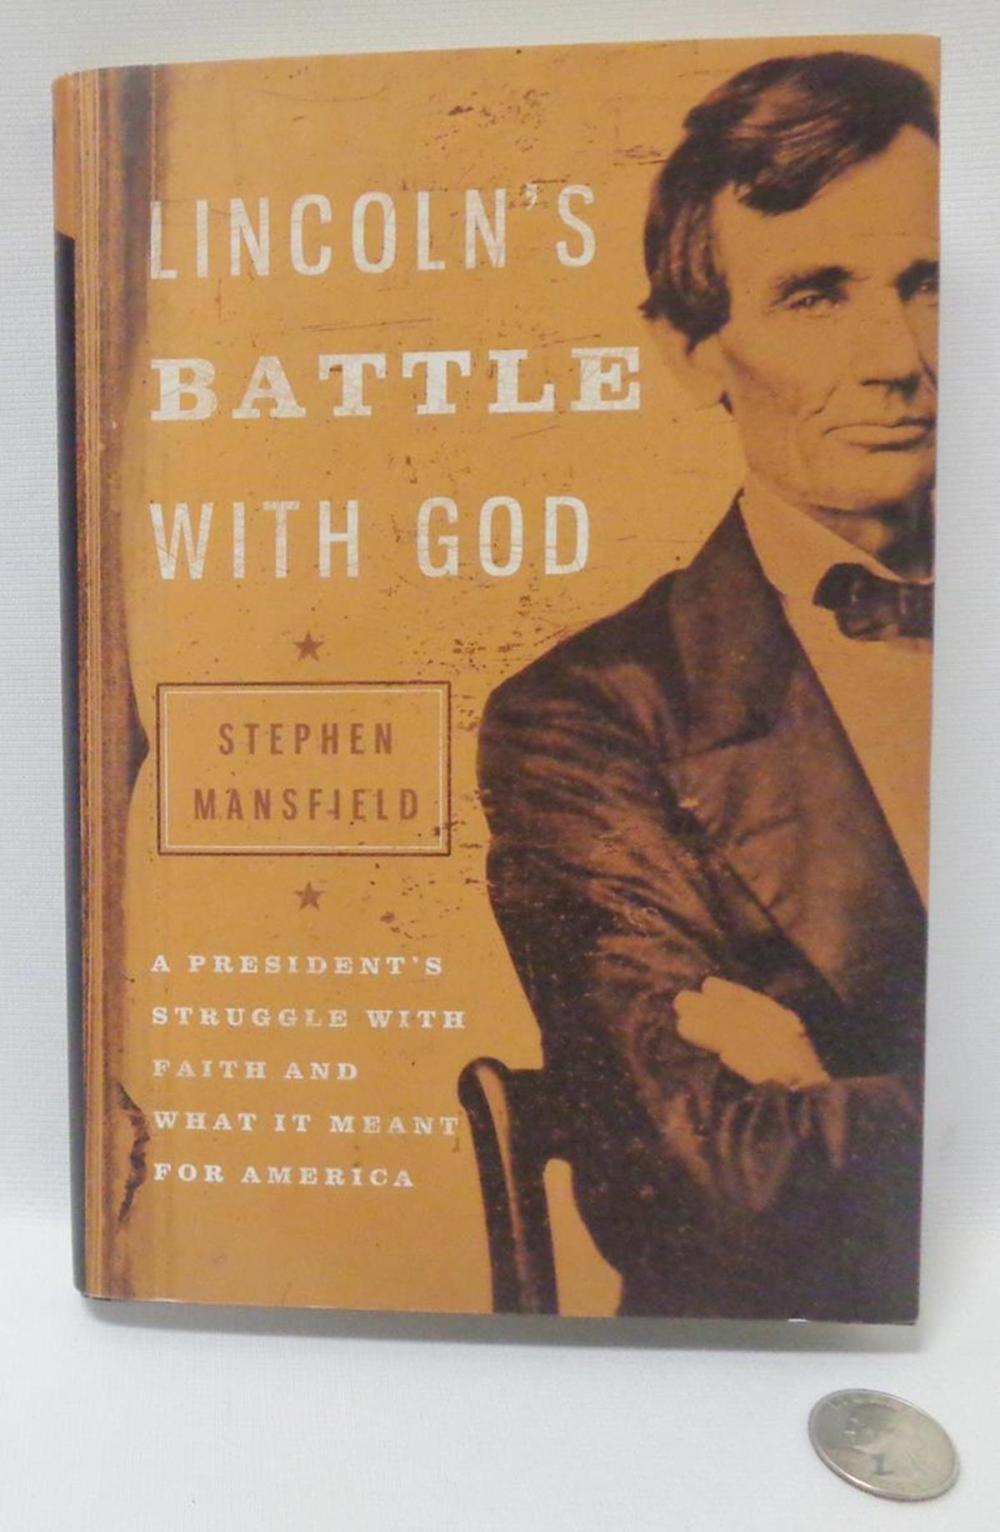 2012 Lincoln's Battle with God: A President's Struggle by Stephen Mansfield w/ Dust Jacket